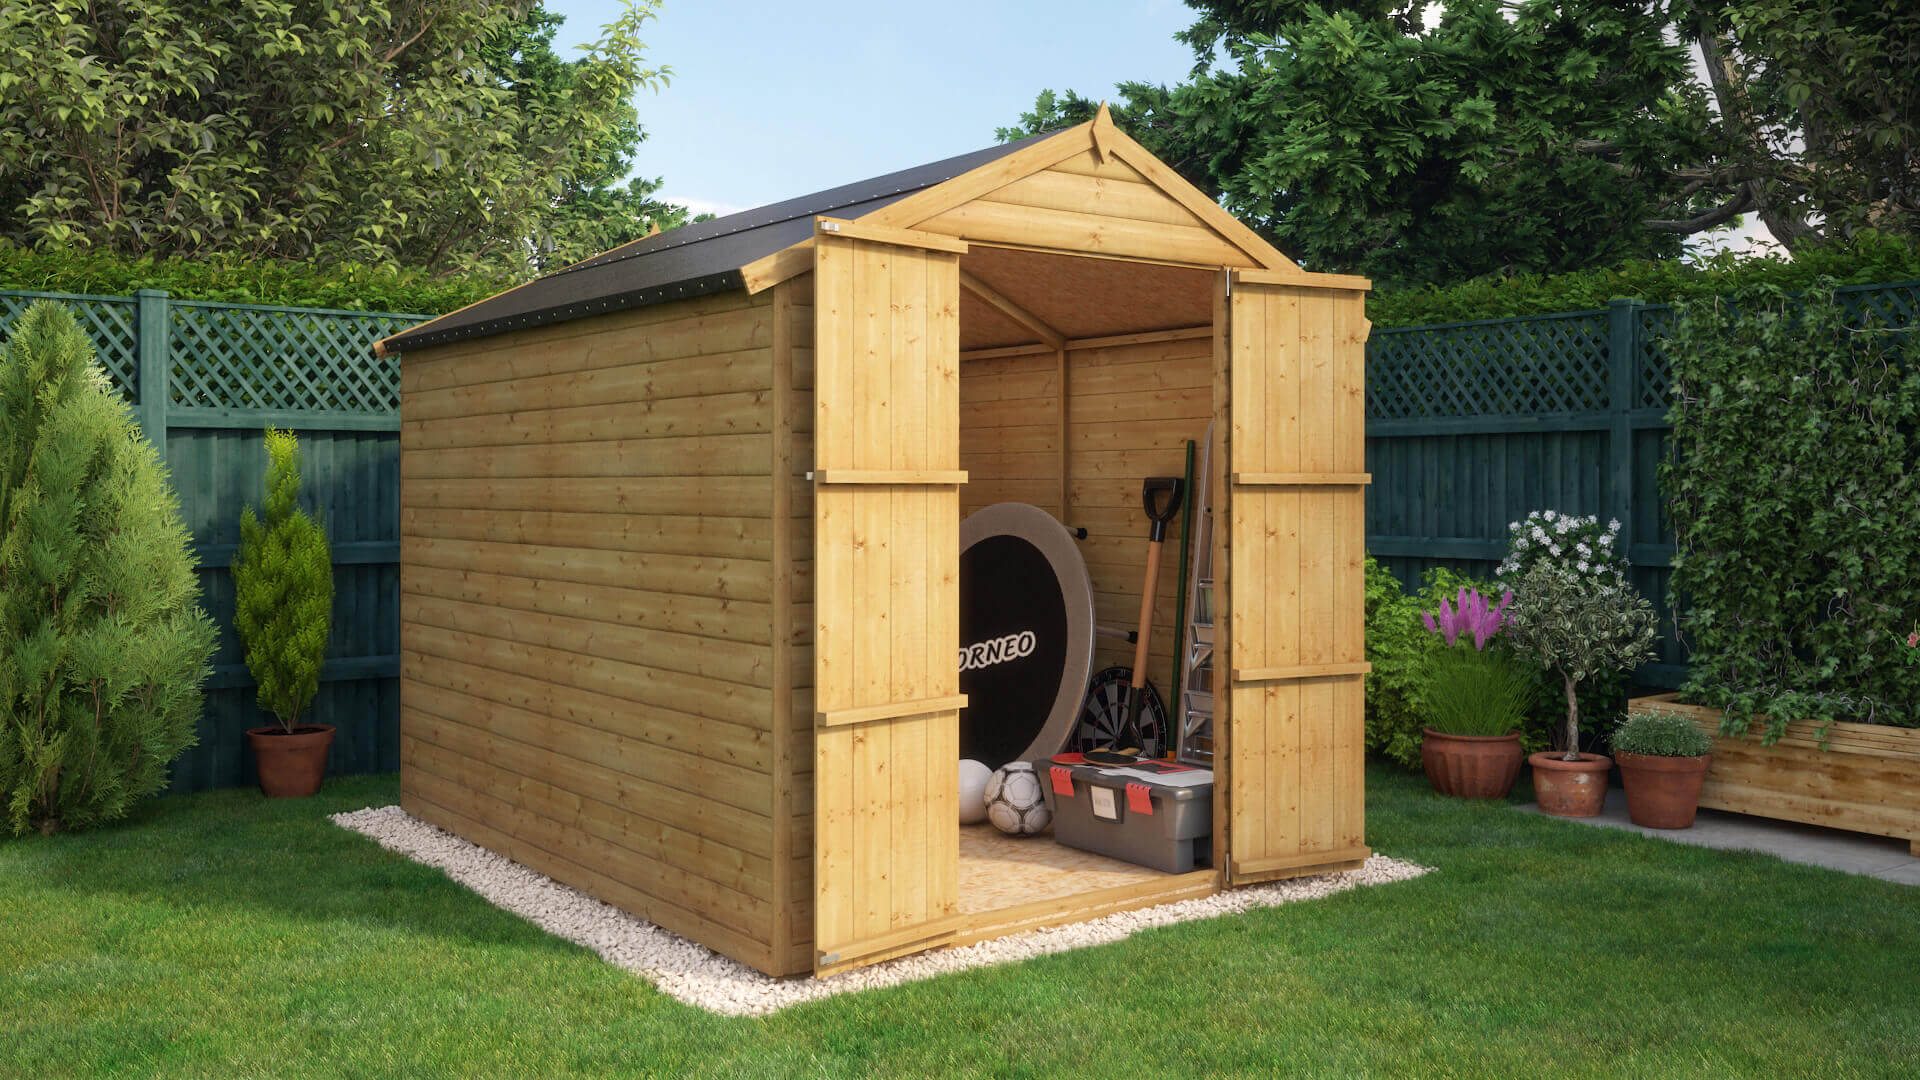 project timber 8x6 loglap windowless wooden garden shed